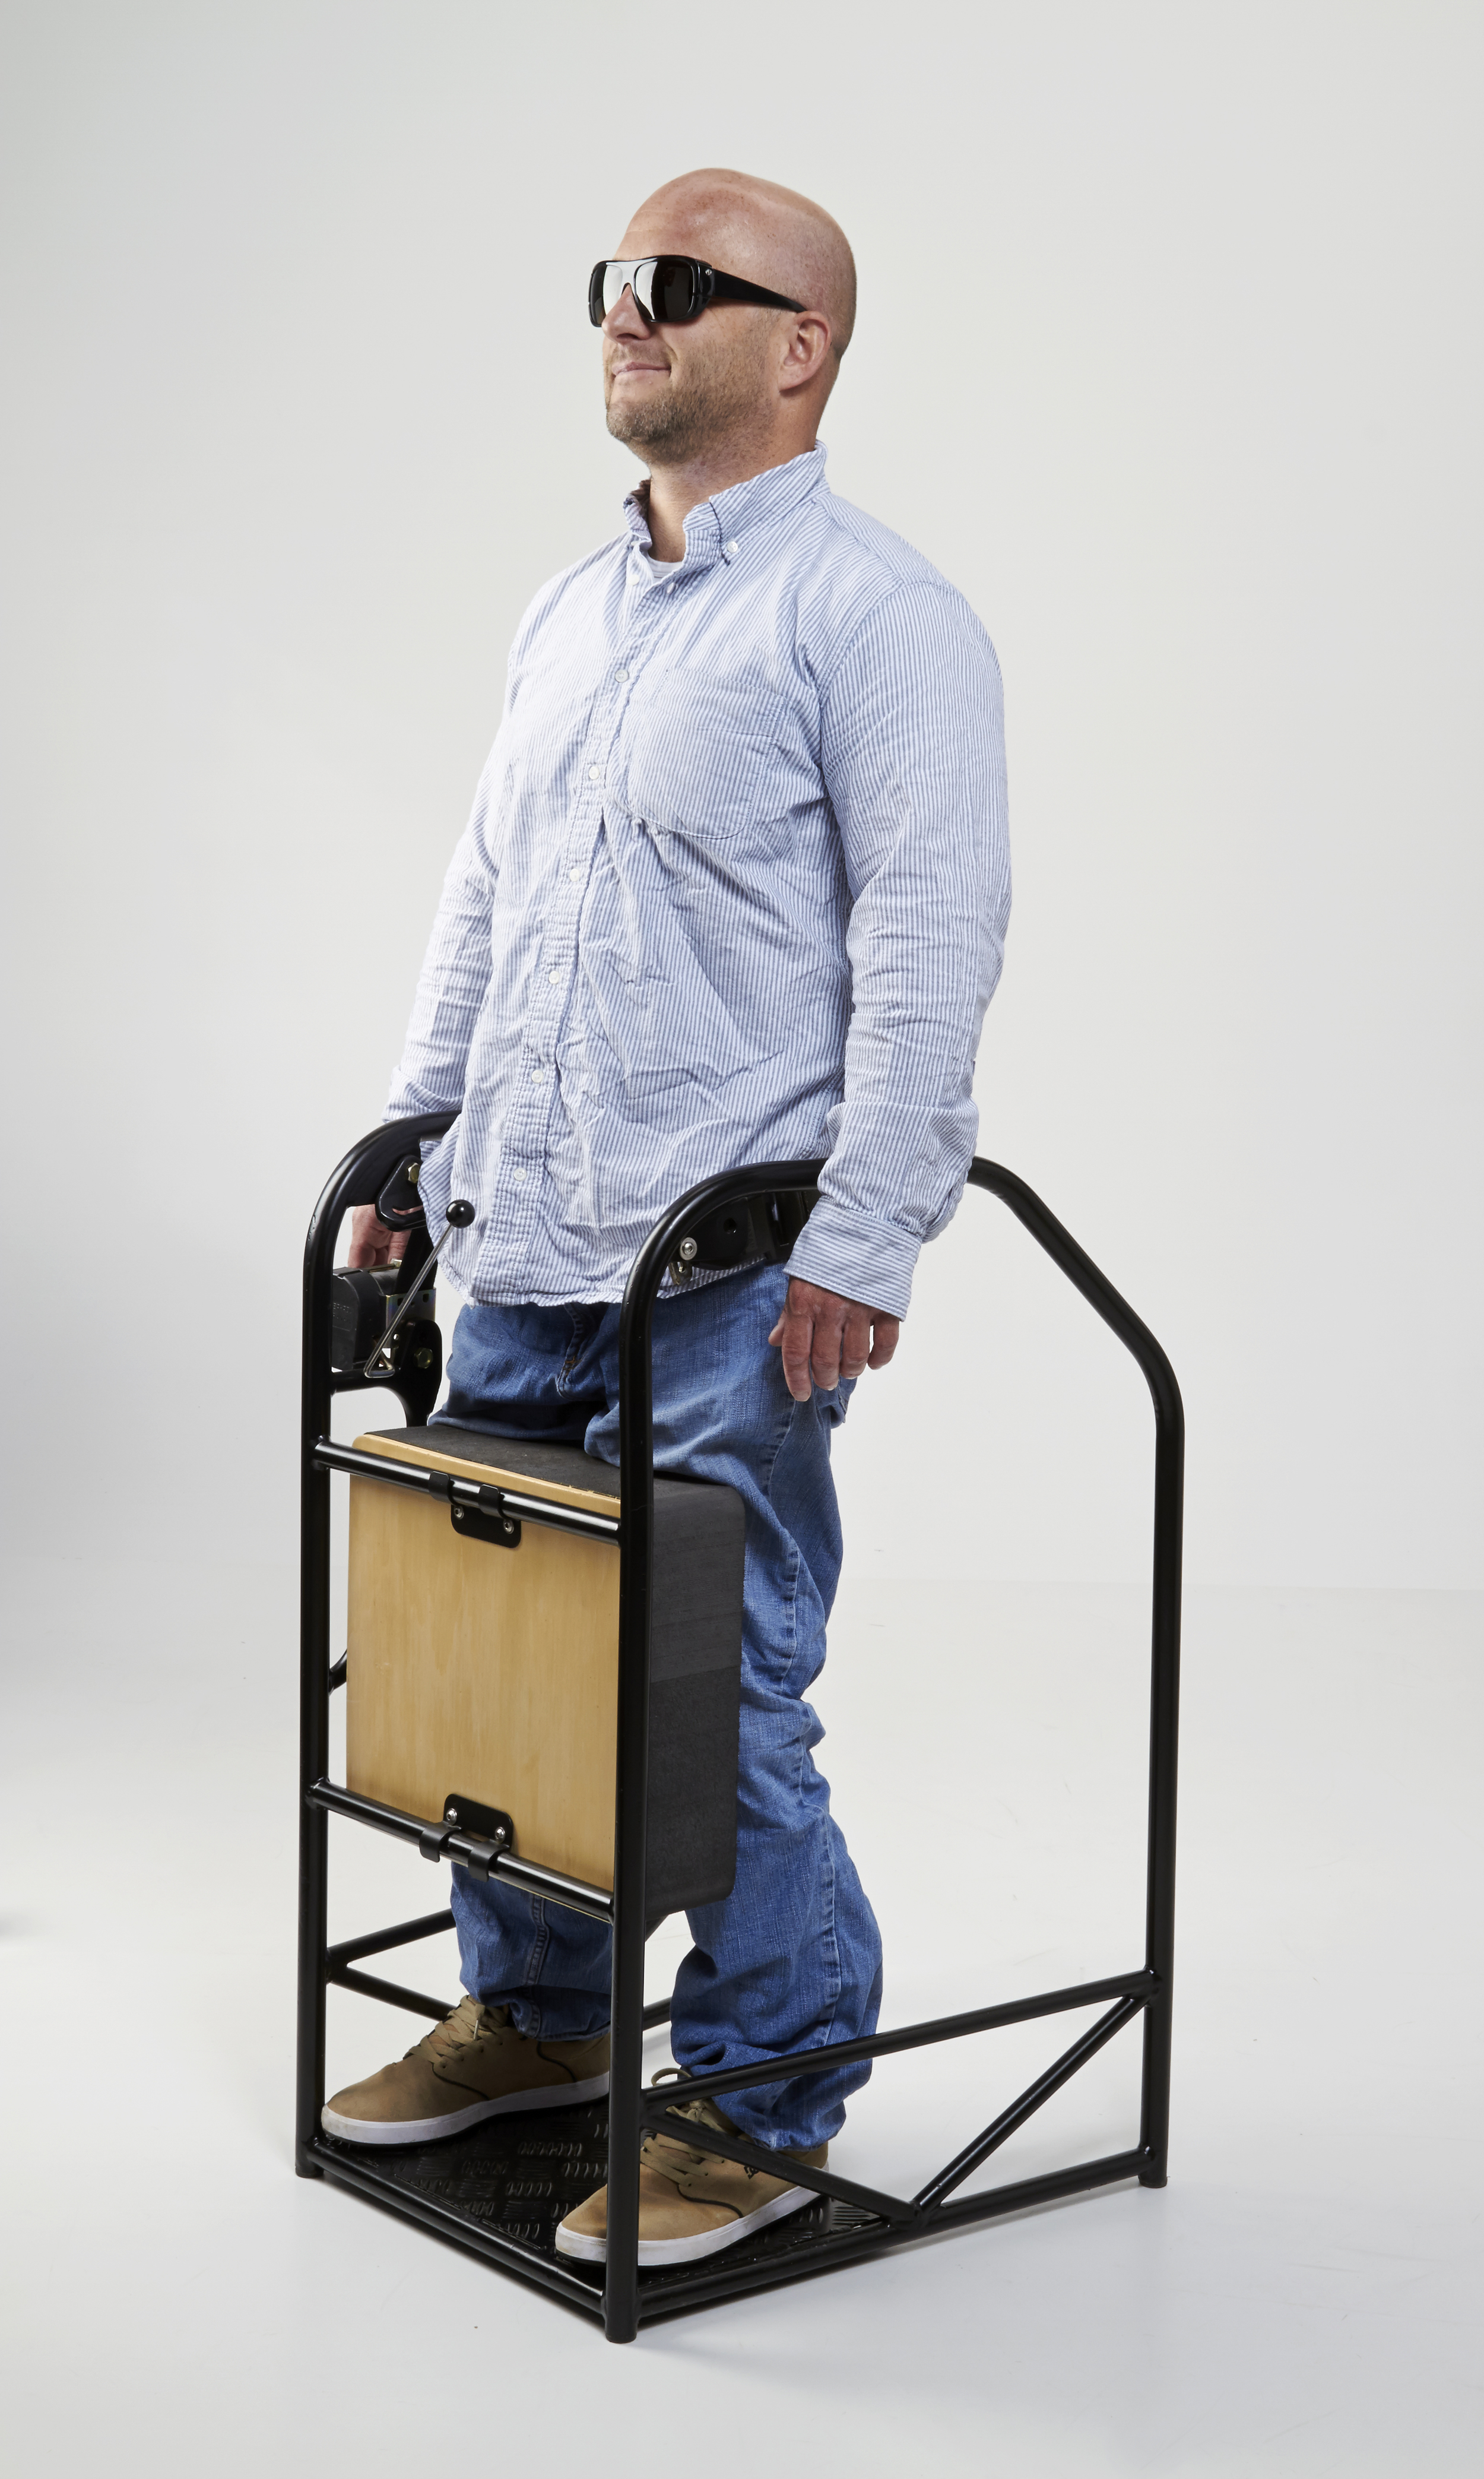 PARASTANDER allows paraplegics to stand up more quickly and stand more often and for a longer time.